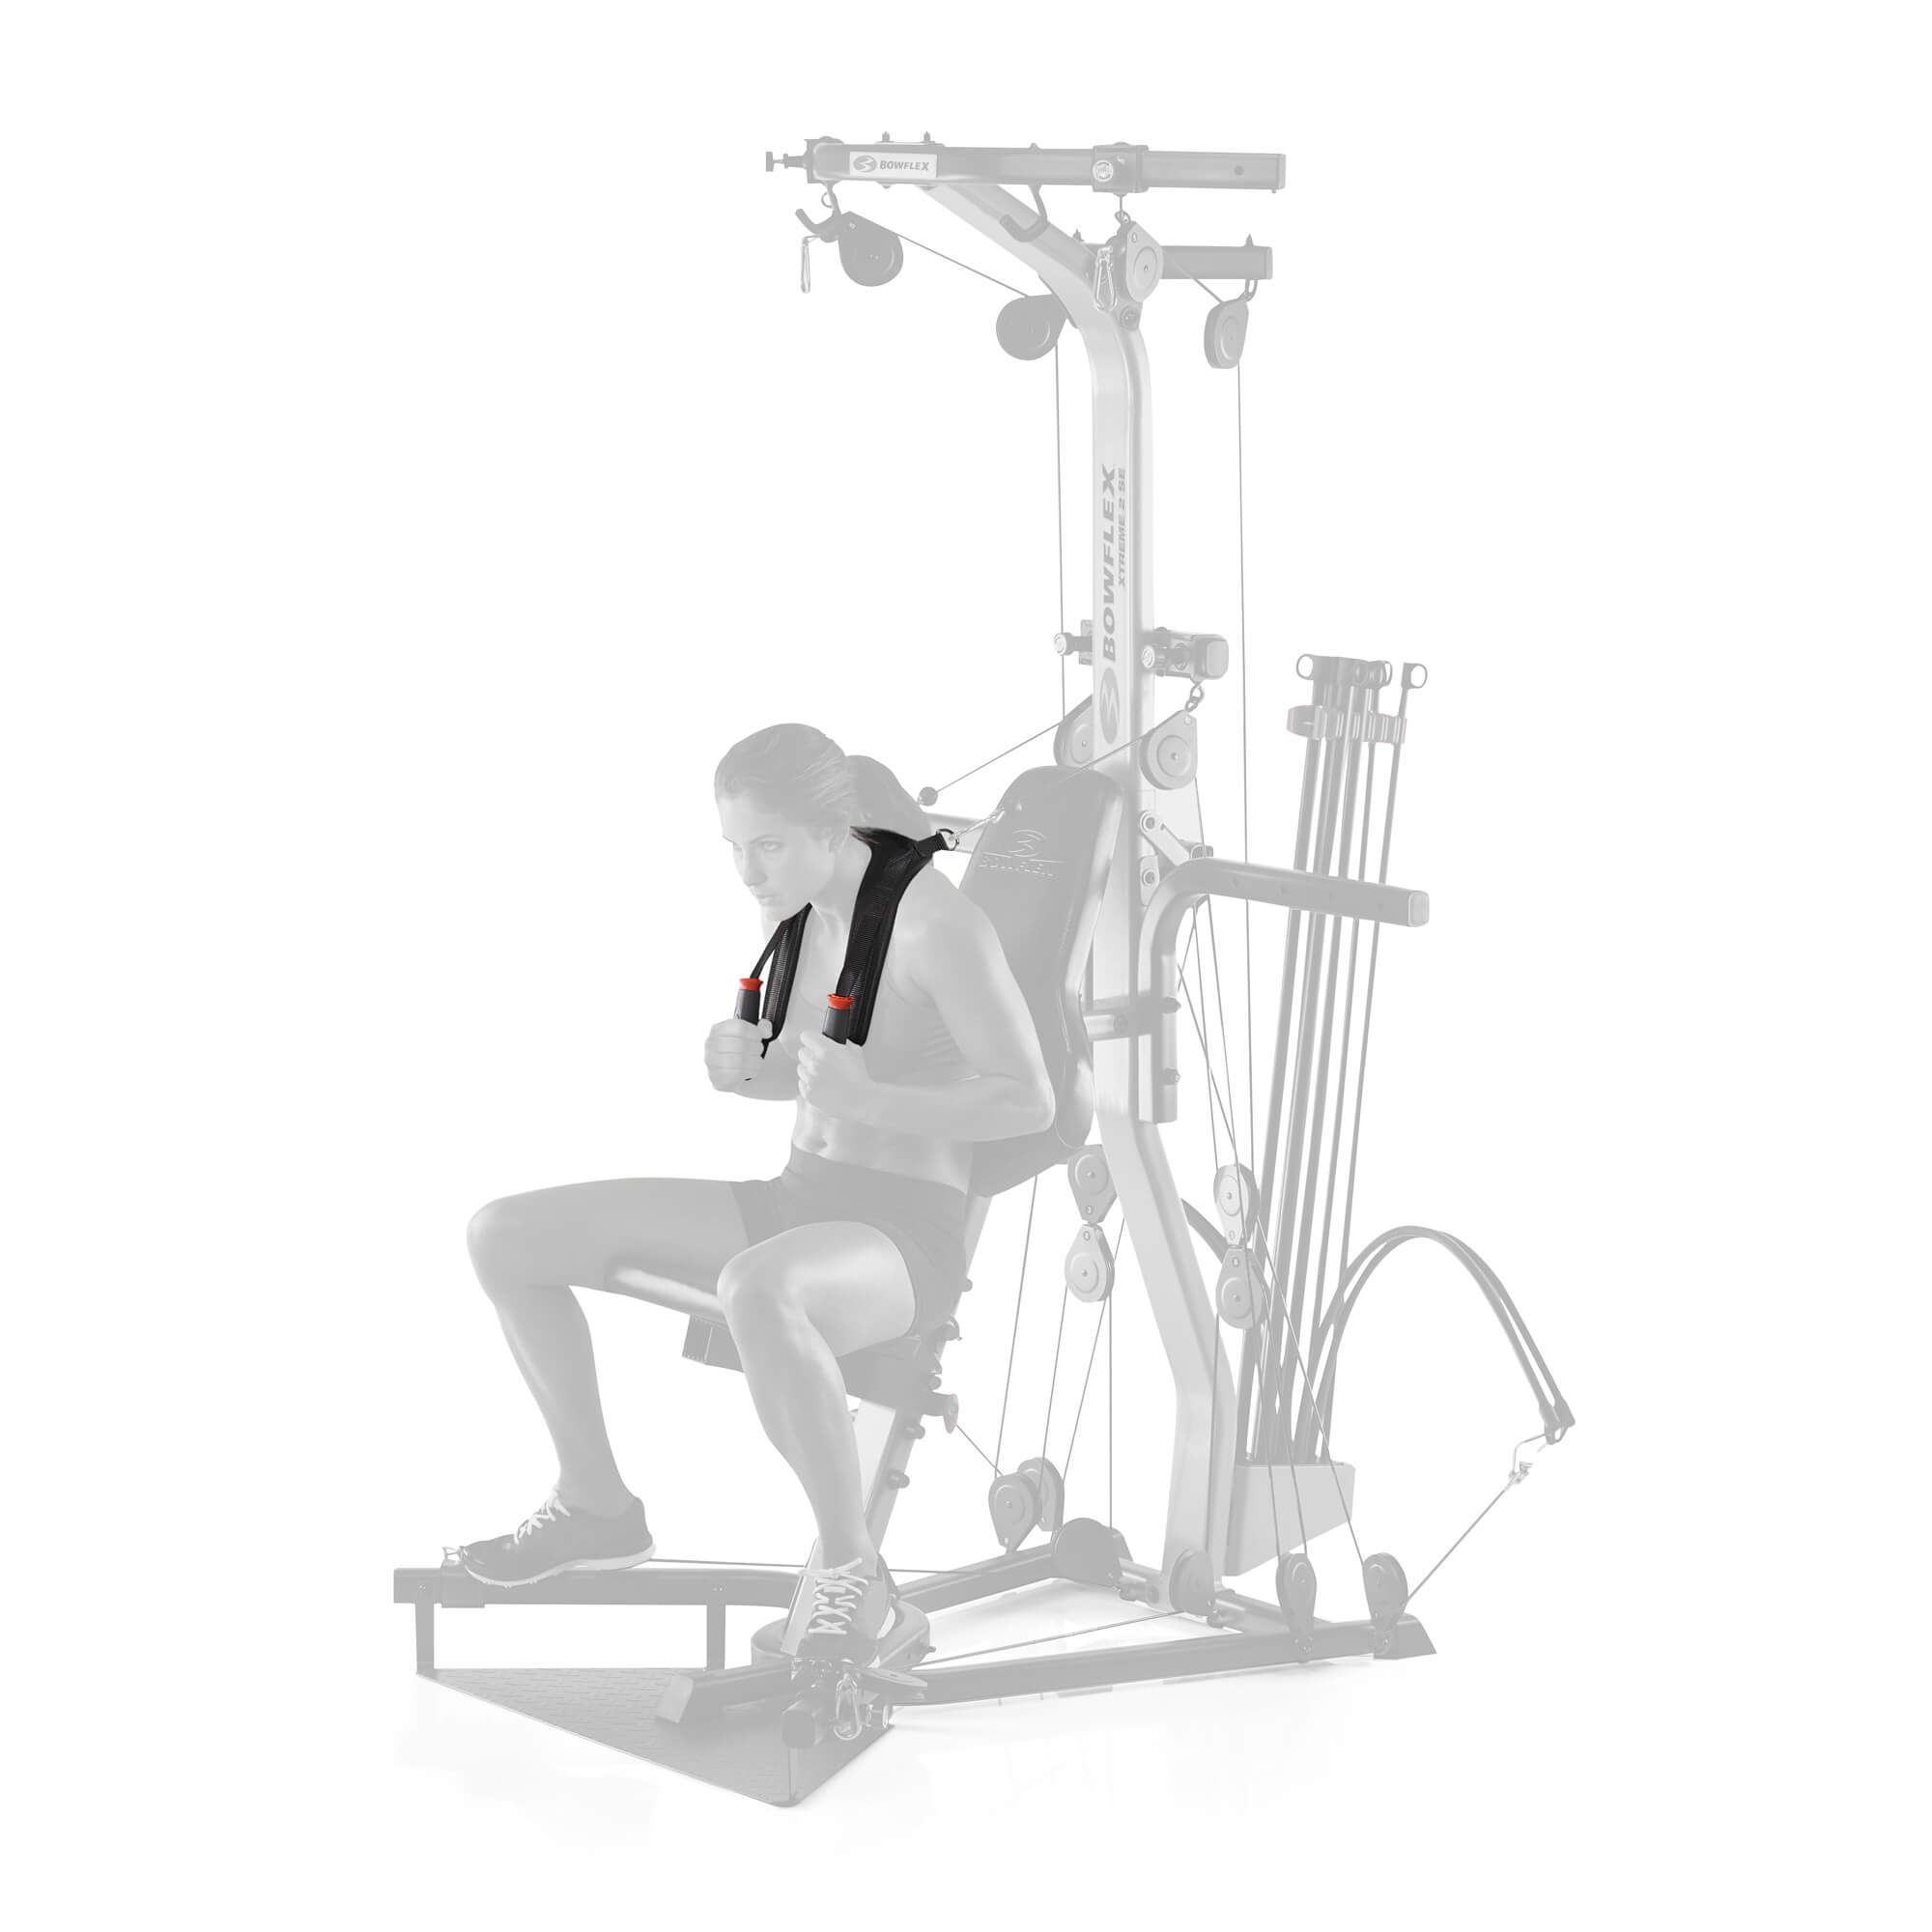 Bowflex Ab Crunch Shoulder Harness